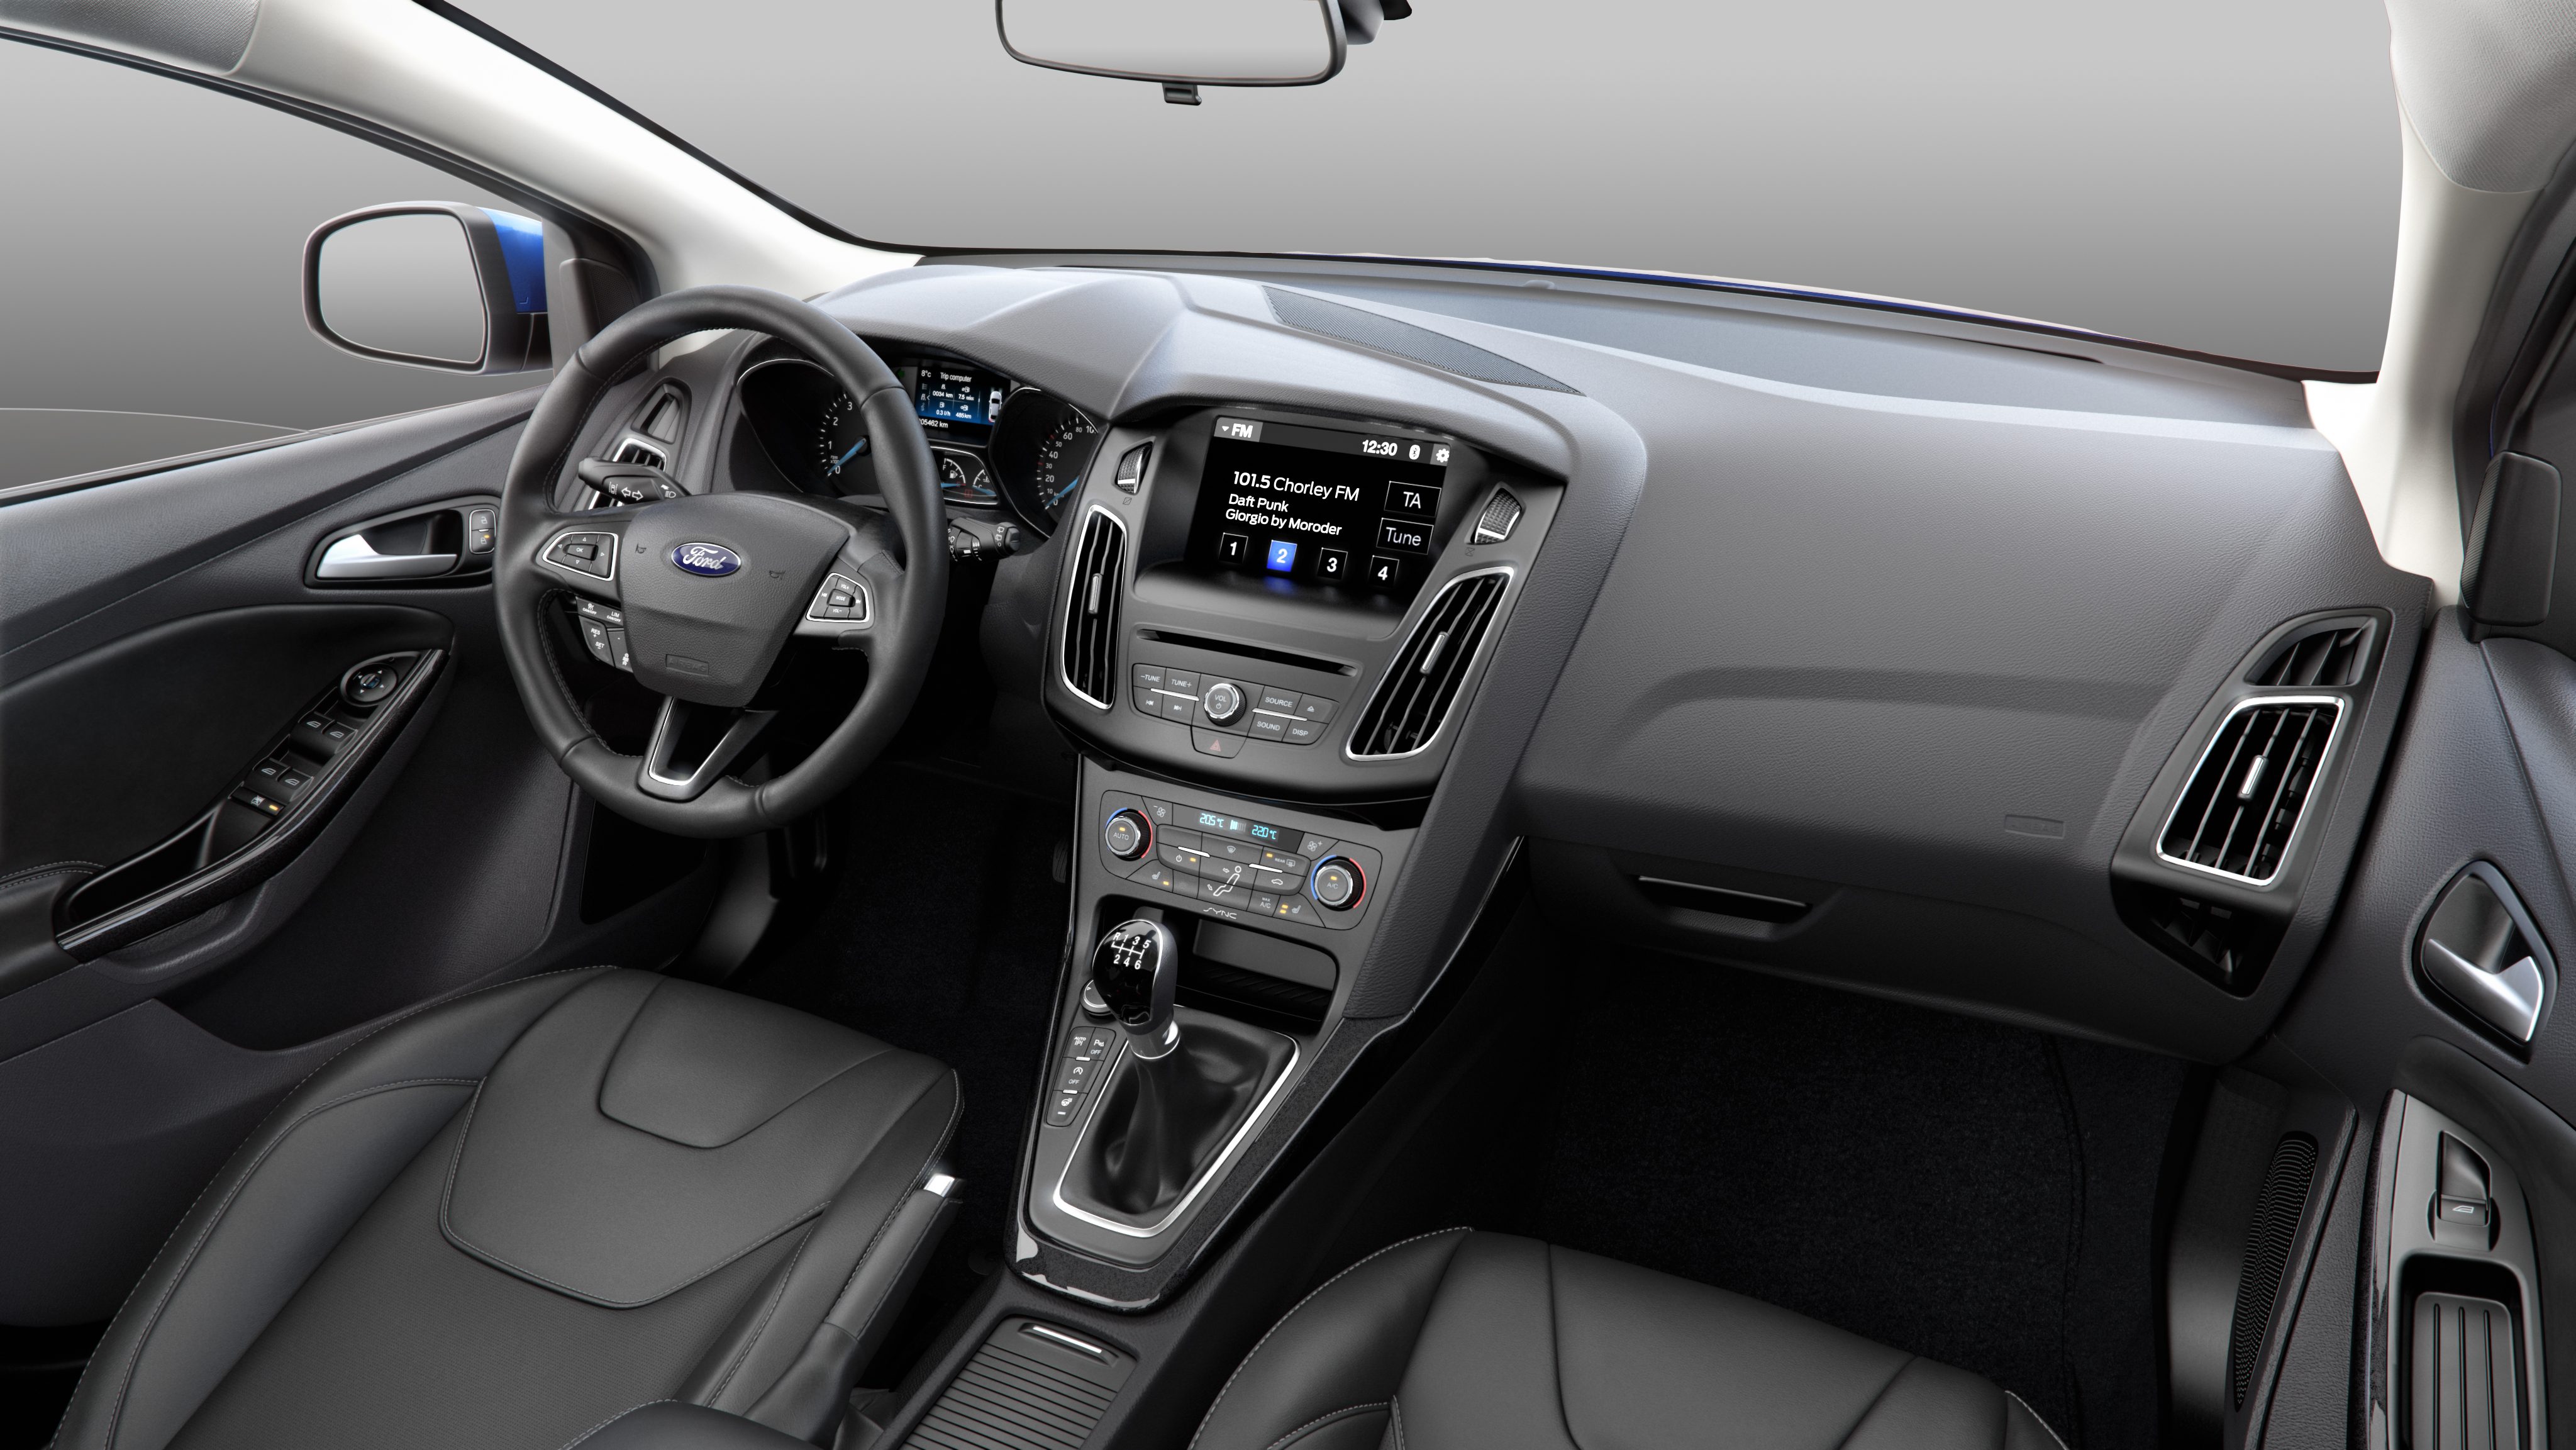 The Ford Focus 2015 Click Here For Full Res